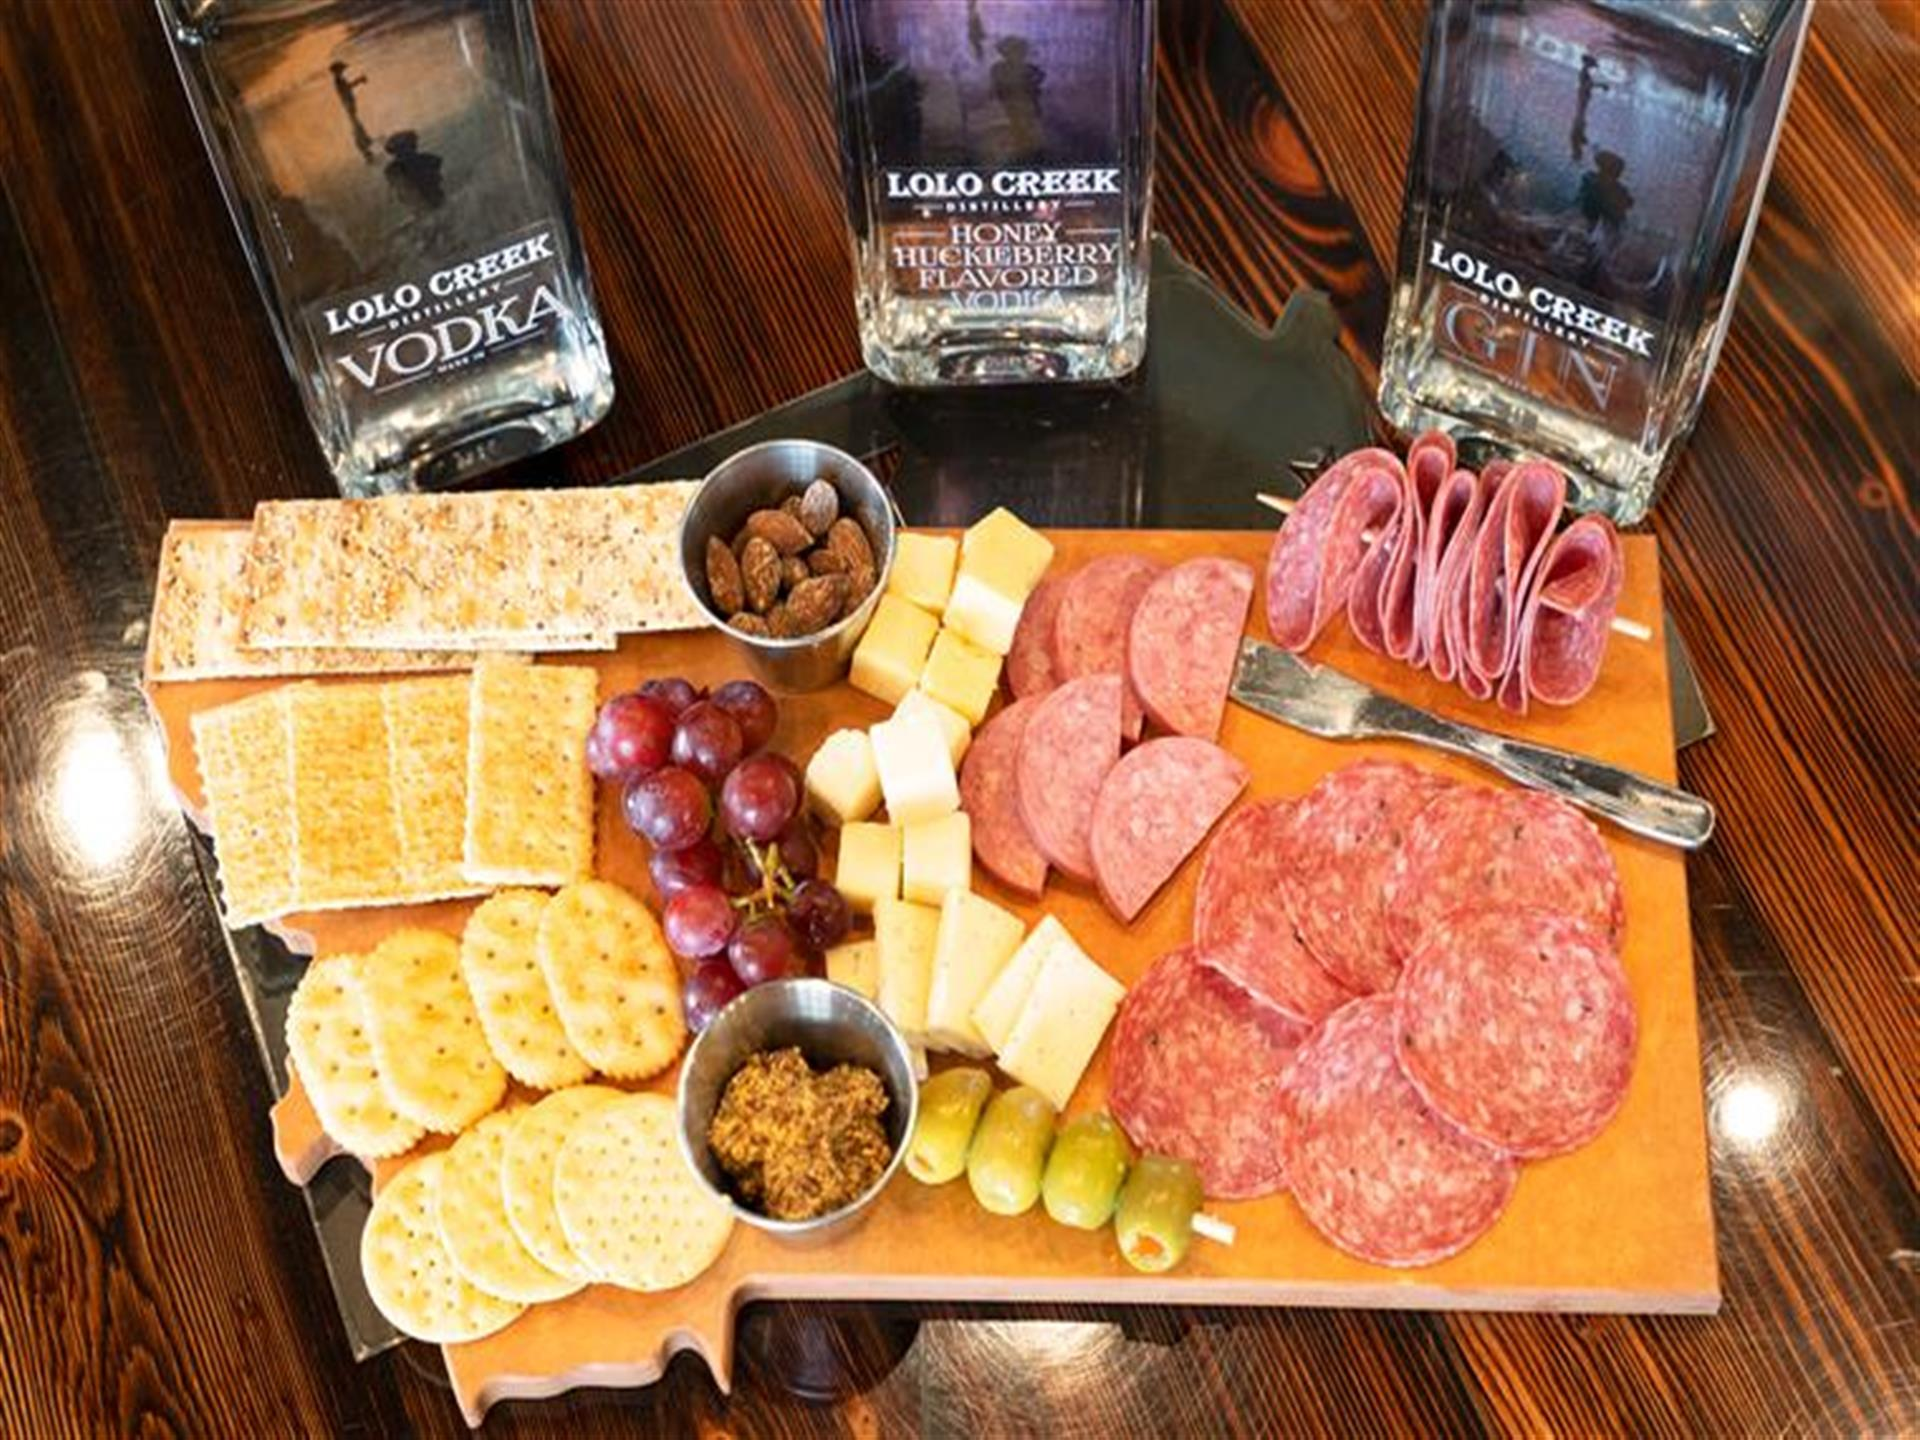 Lolo Creek Distillery chartreuse board